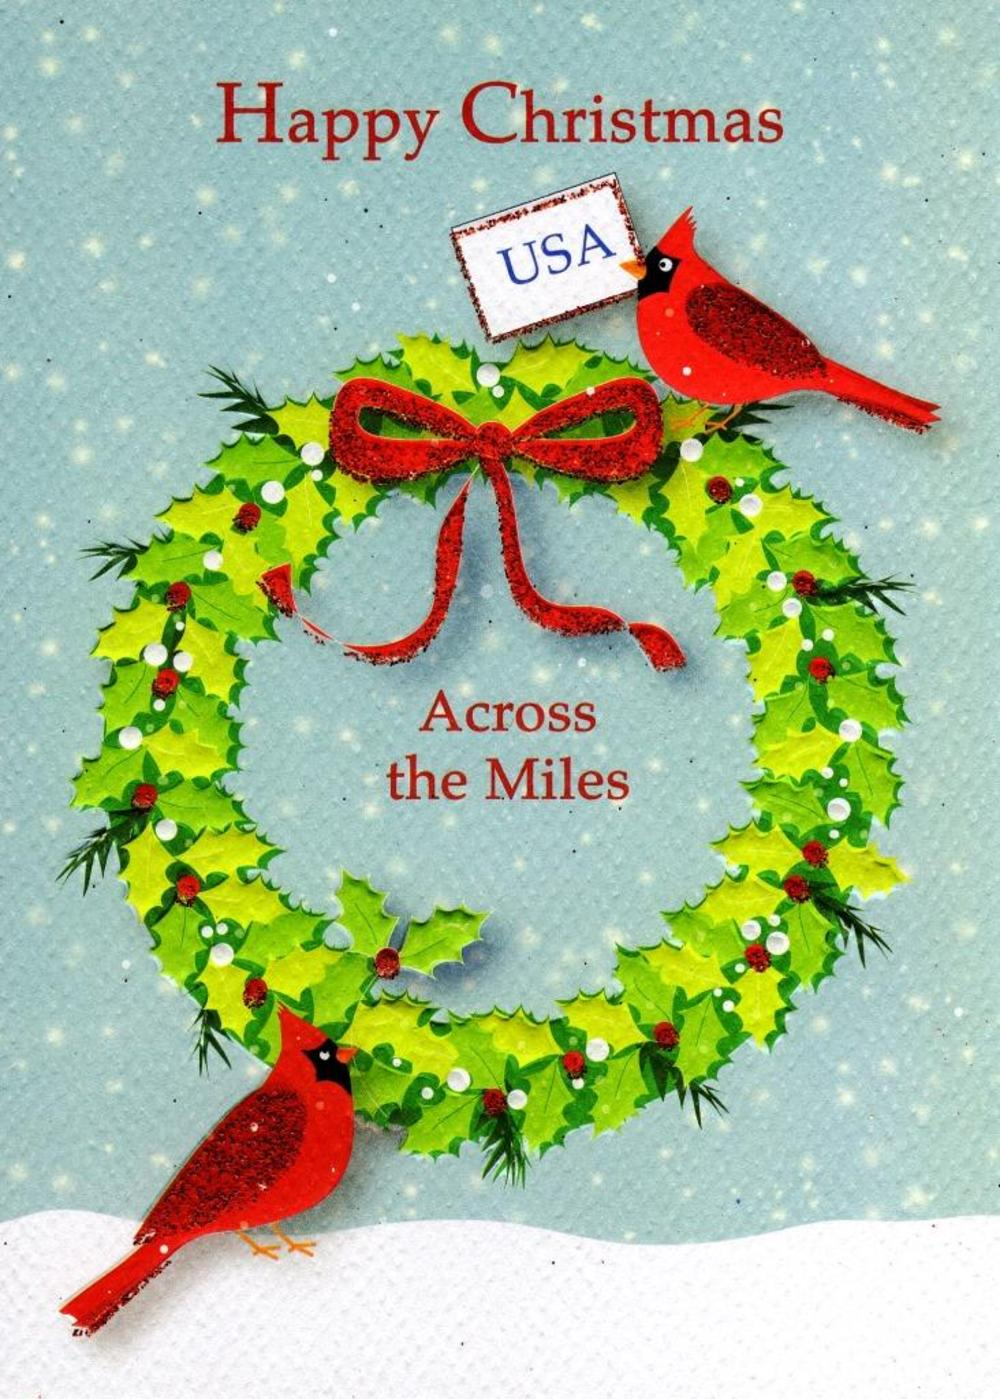 Happy Christmas USA Across The Miles Xmas Card